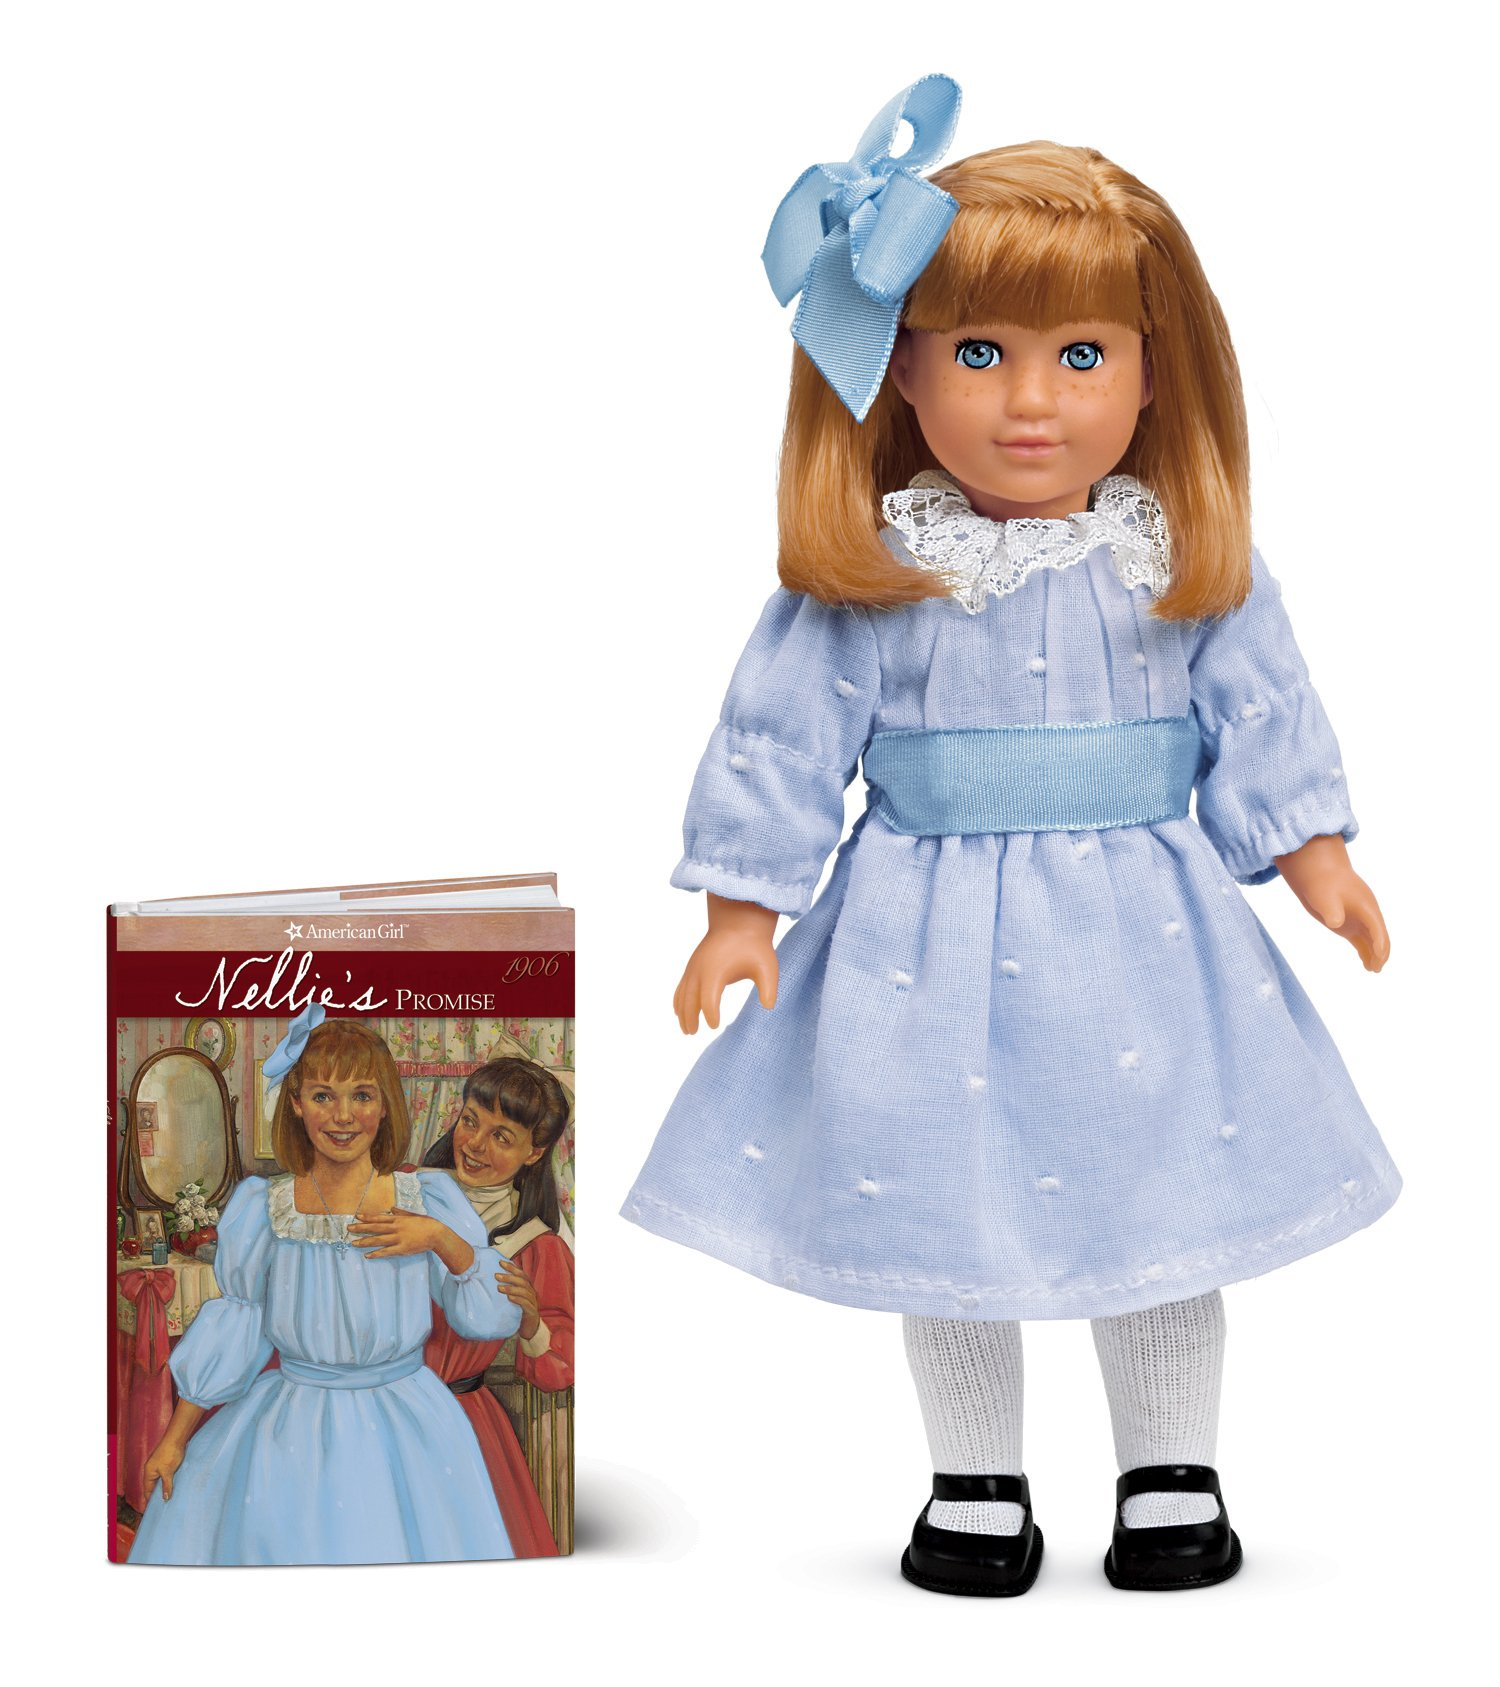 Dolls - Clothes, Games Gifts for girls